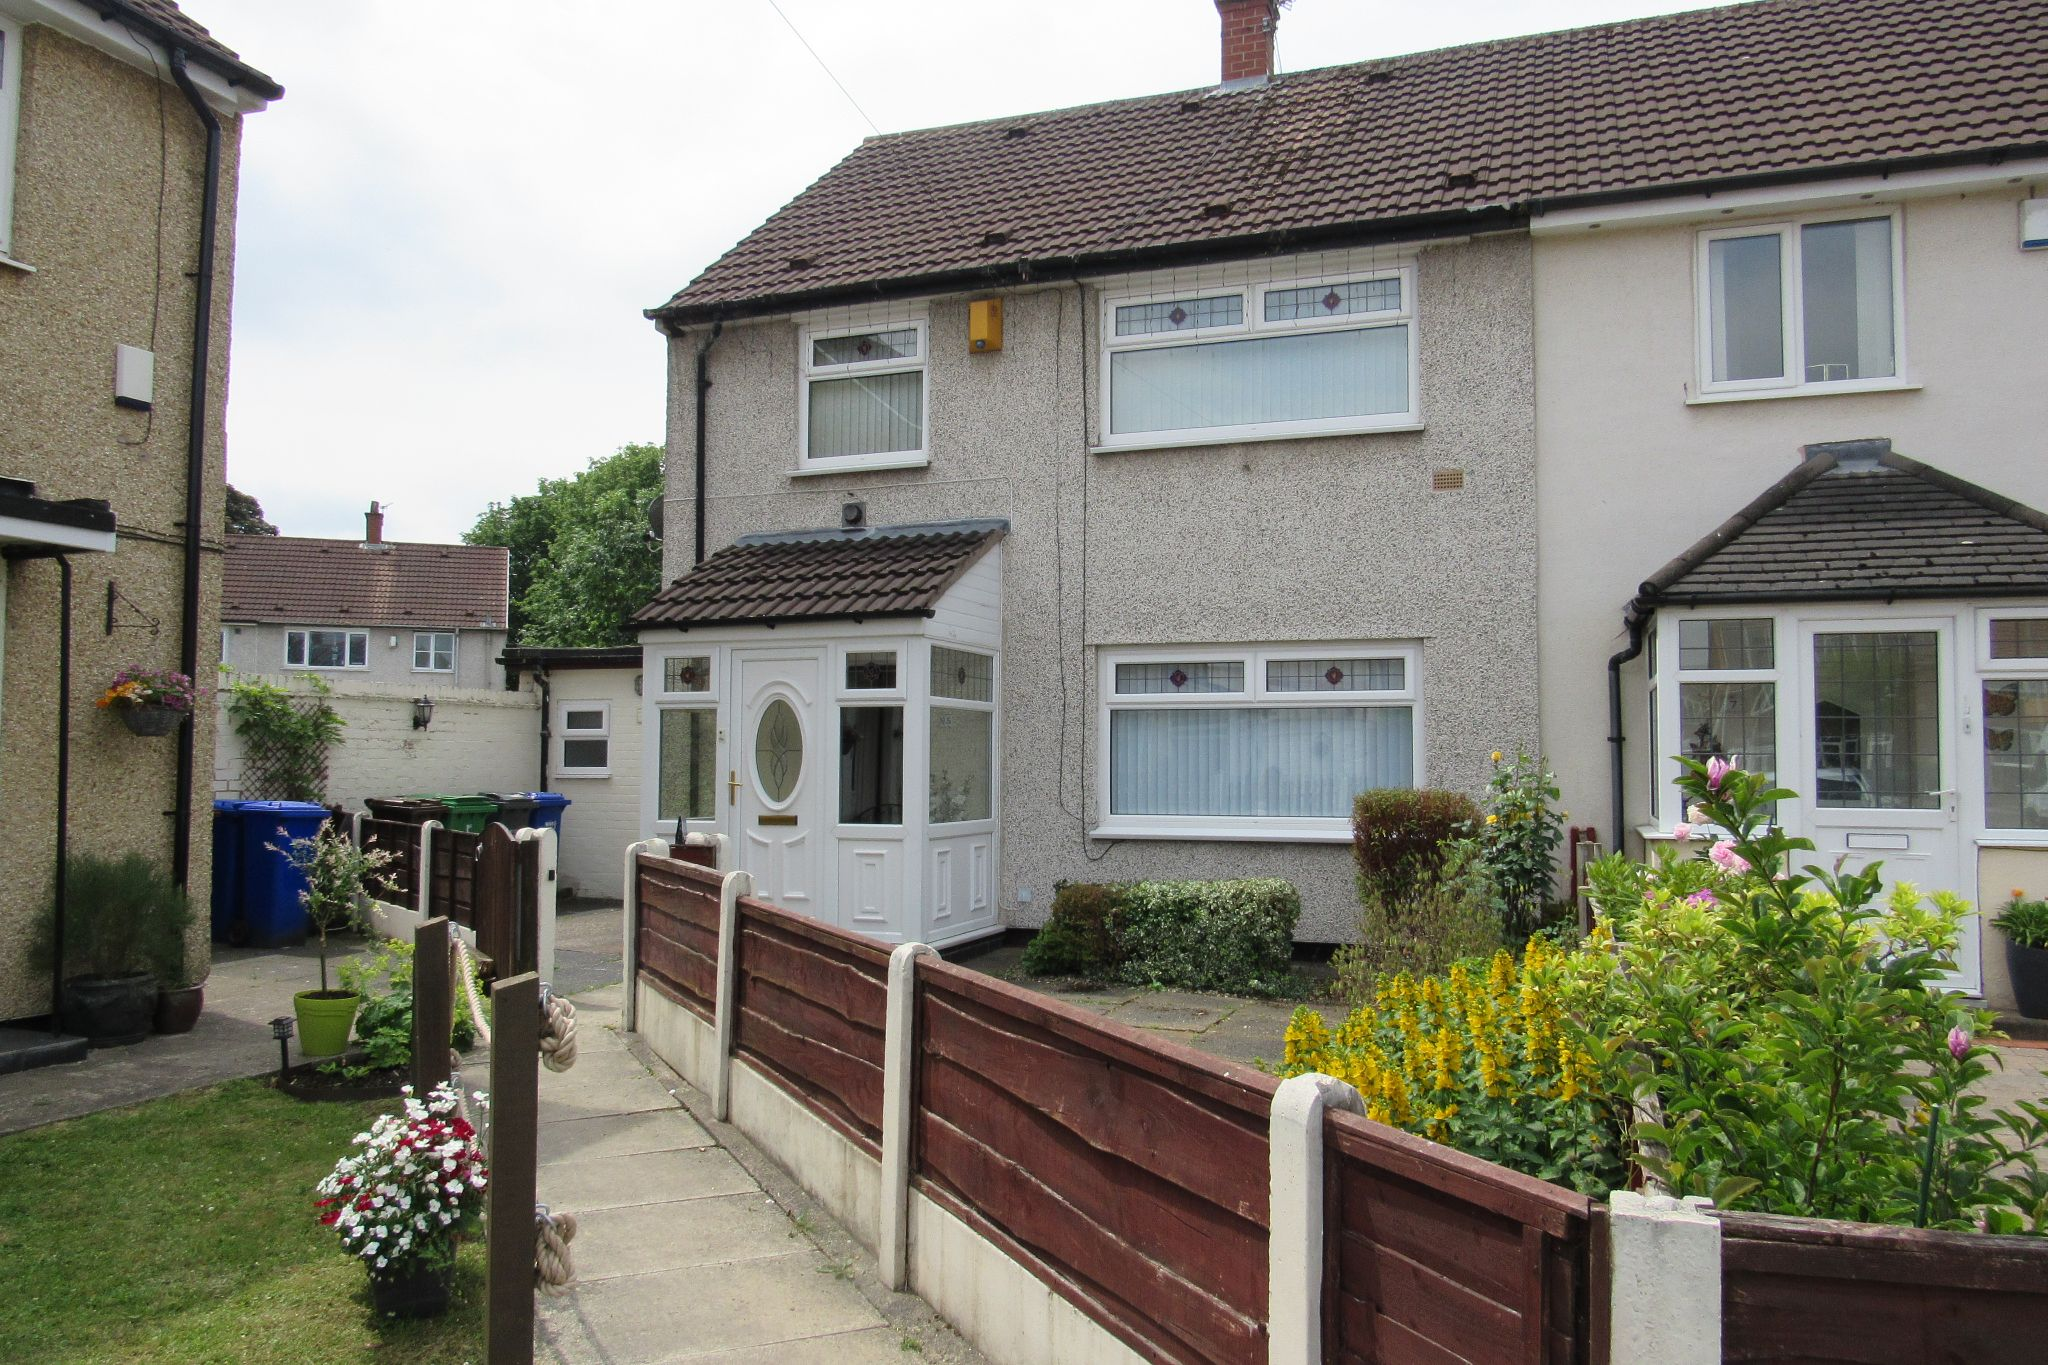 3 bedroom end terraced house SSTC in Manchester - Photograph 1.